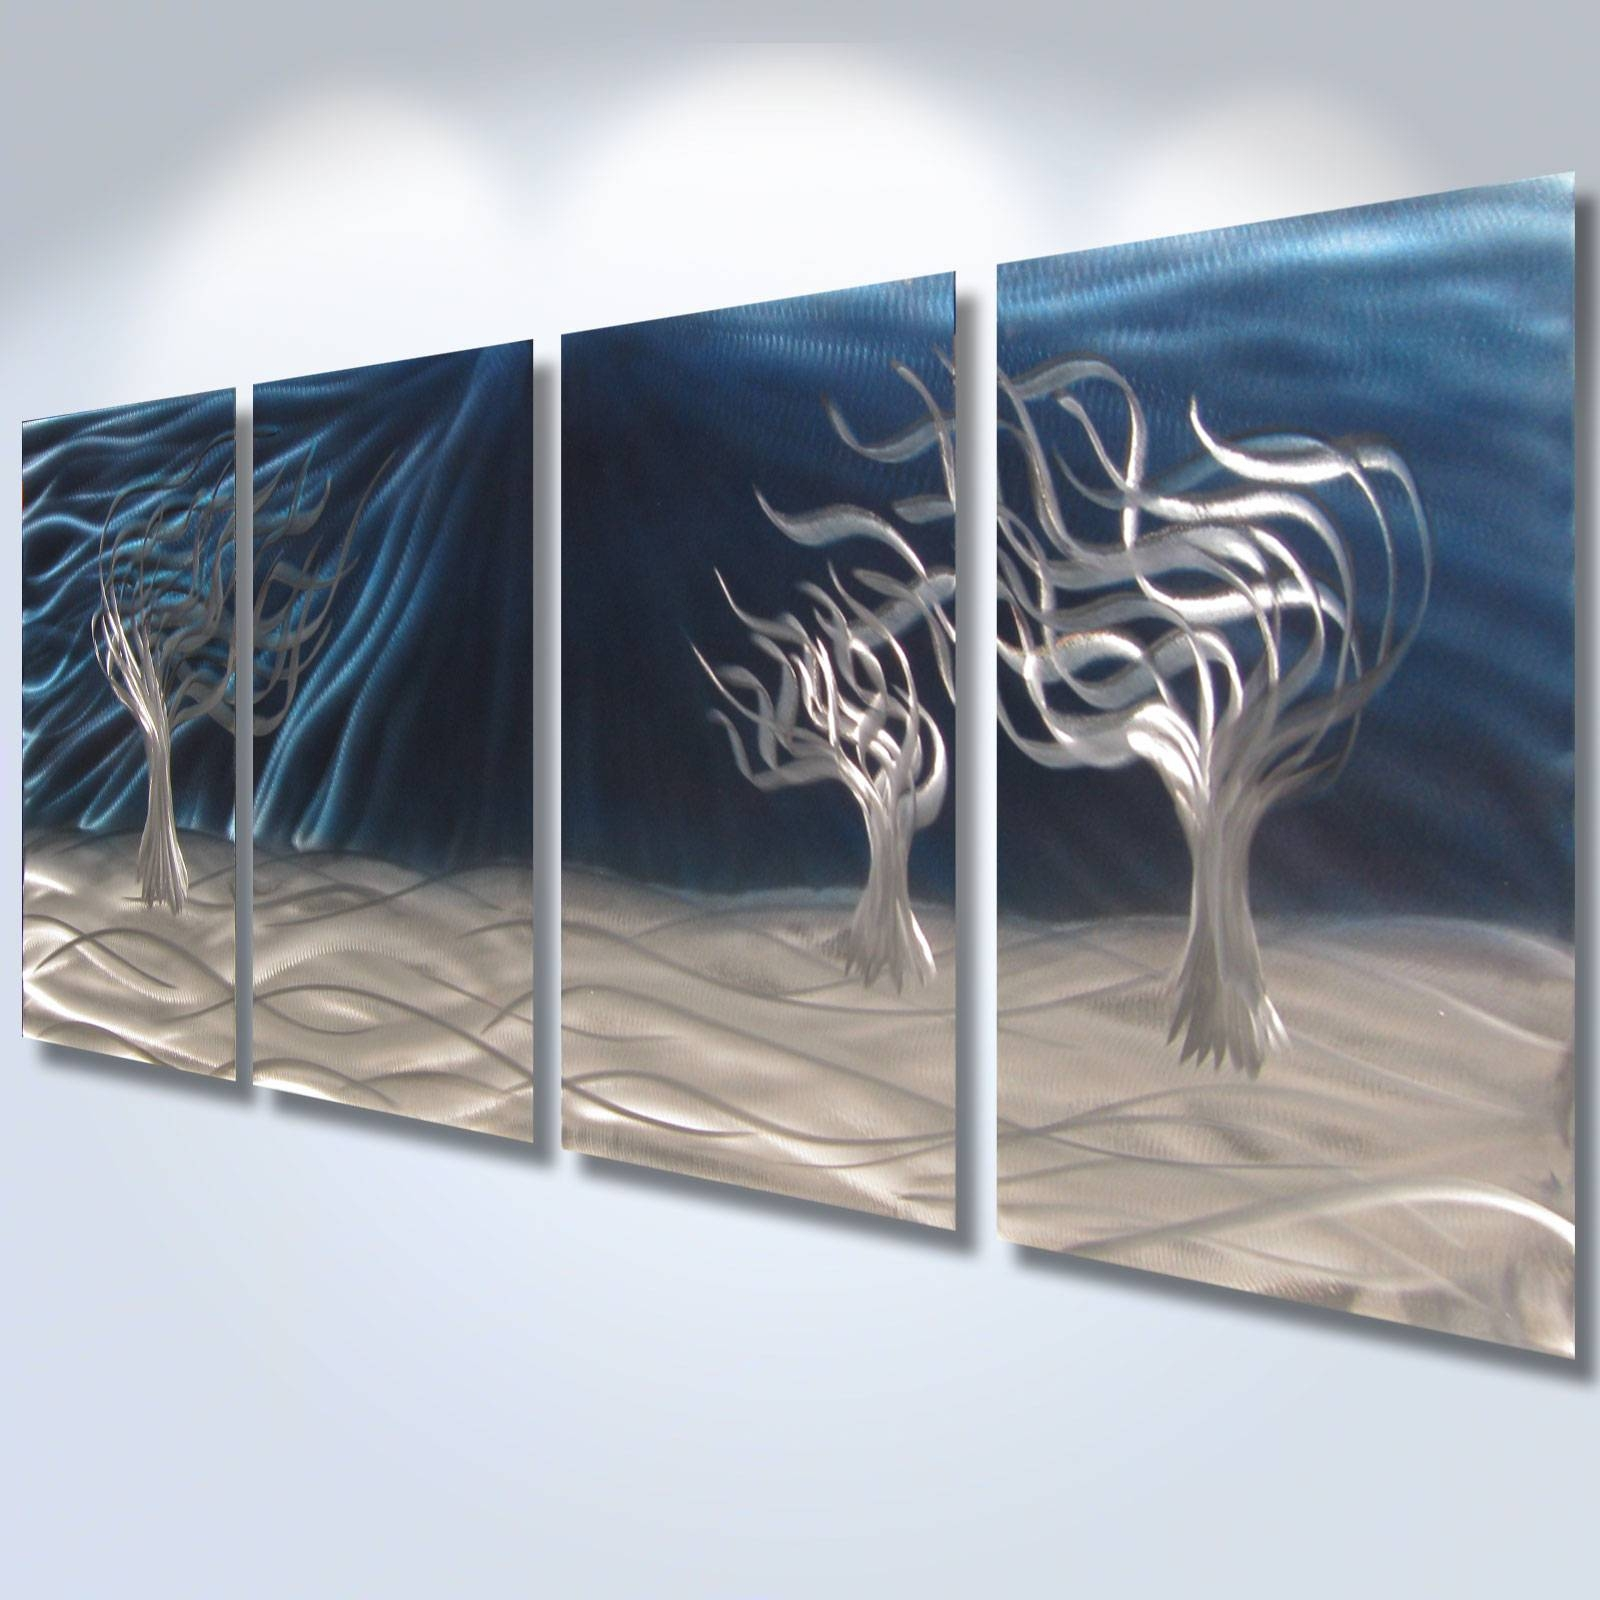 3 Trees Blue – Abstract Metal Wall Art Contemporary Modern Decor Within Latest Modern Abstract Metal Wall Art (View 4 of 20)